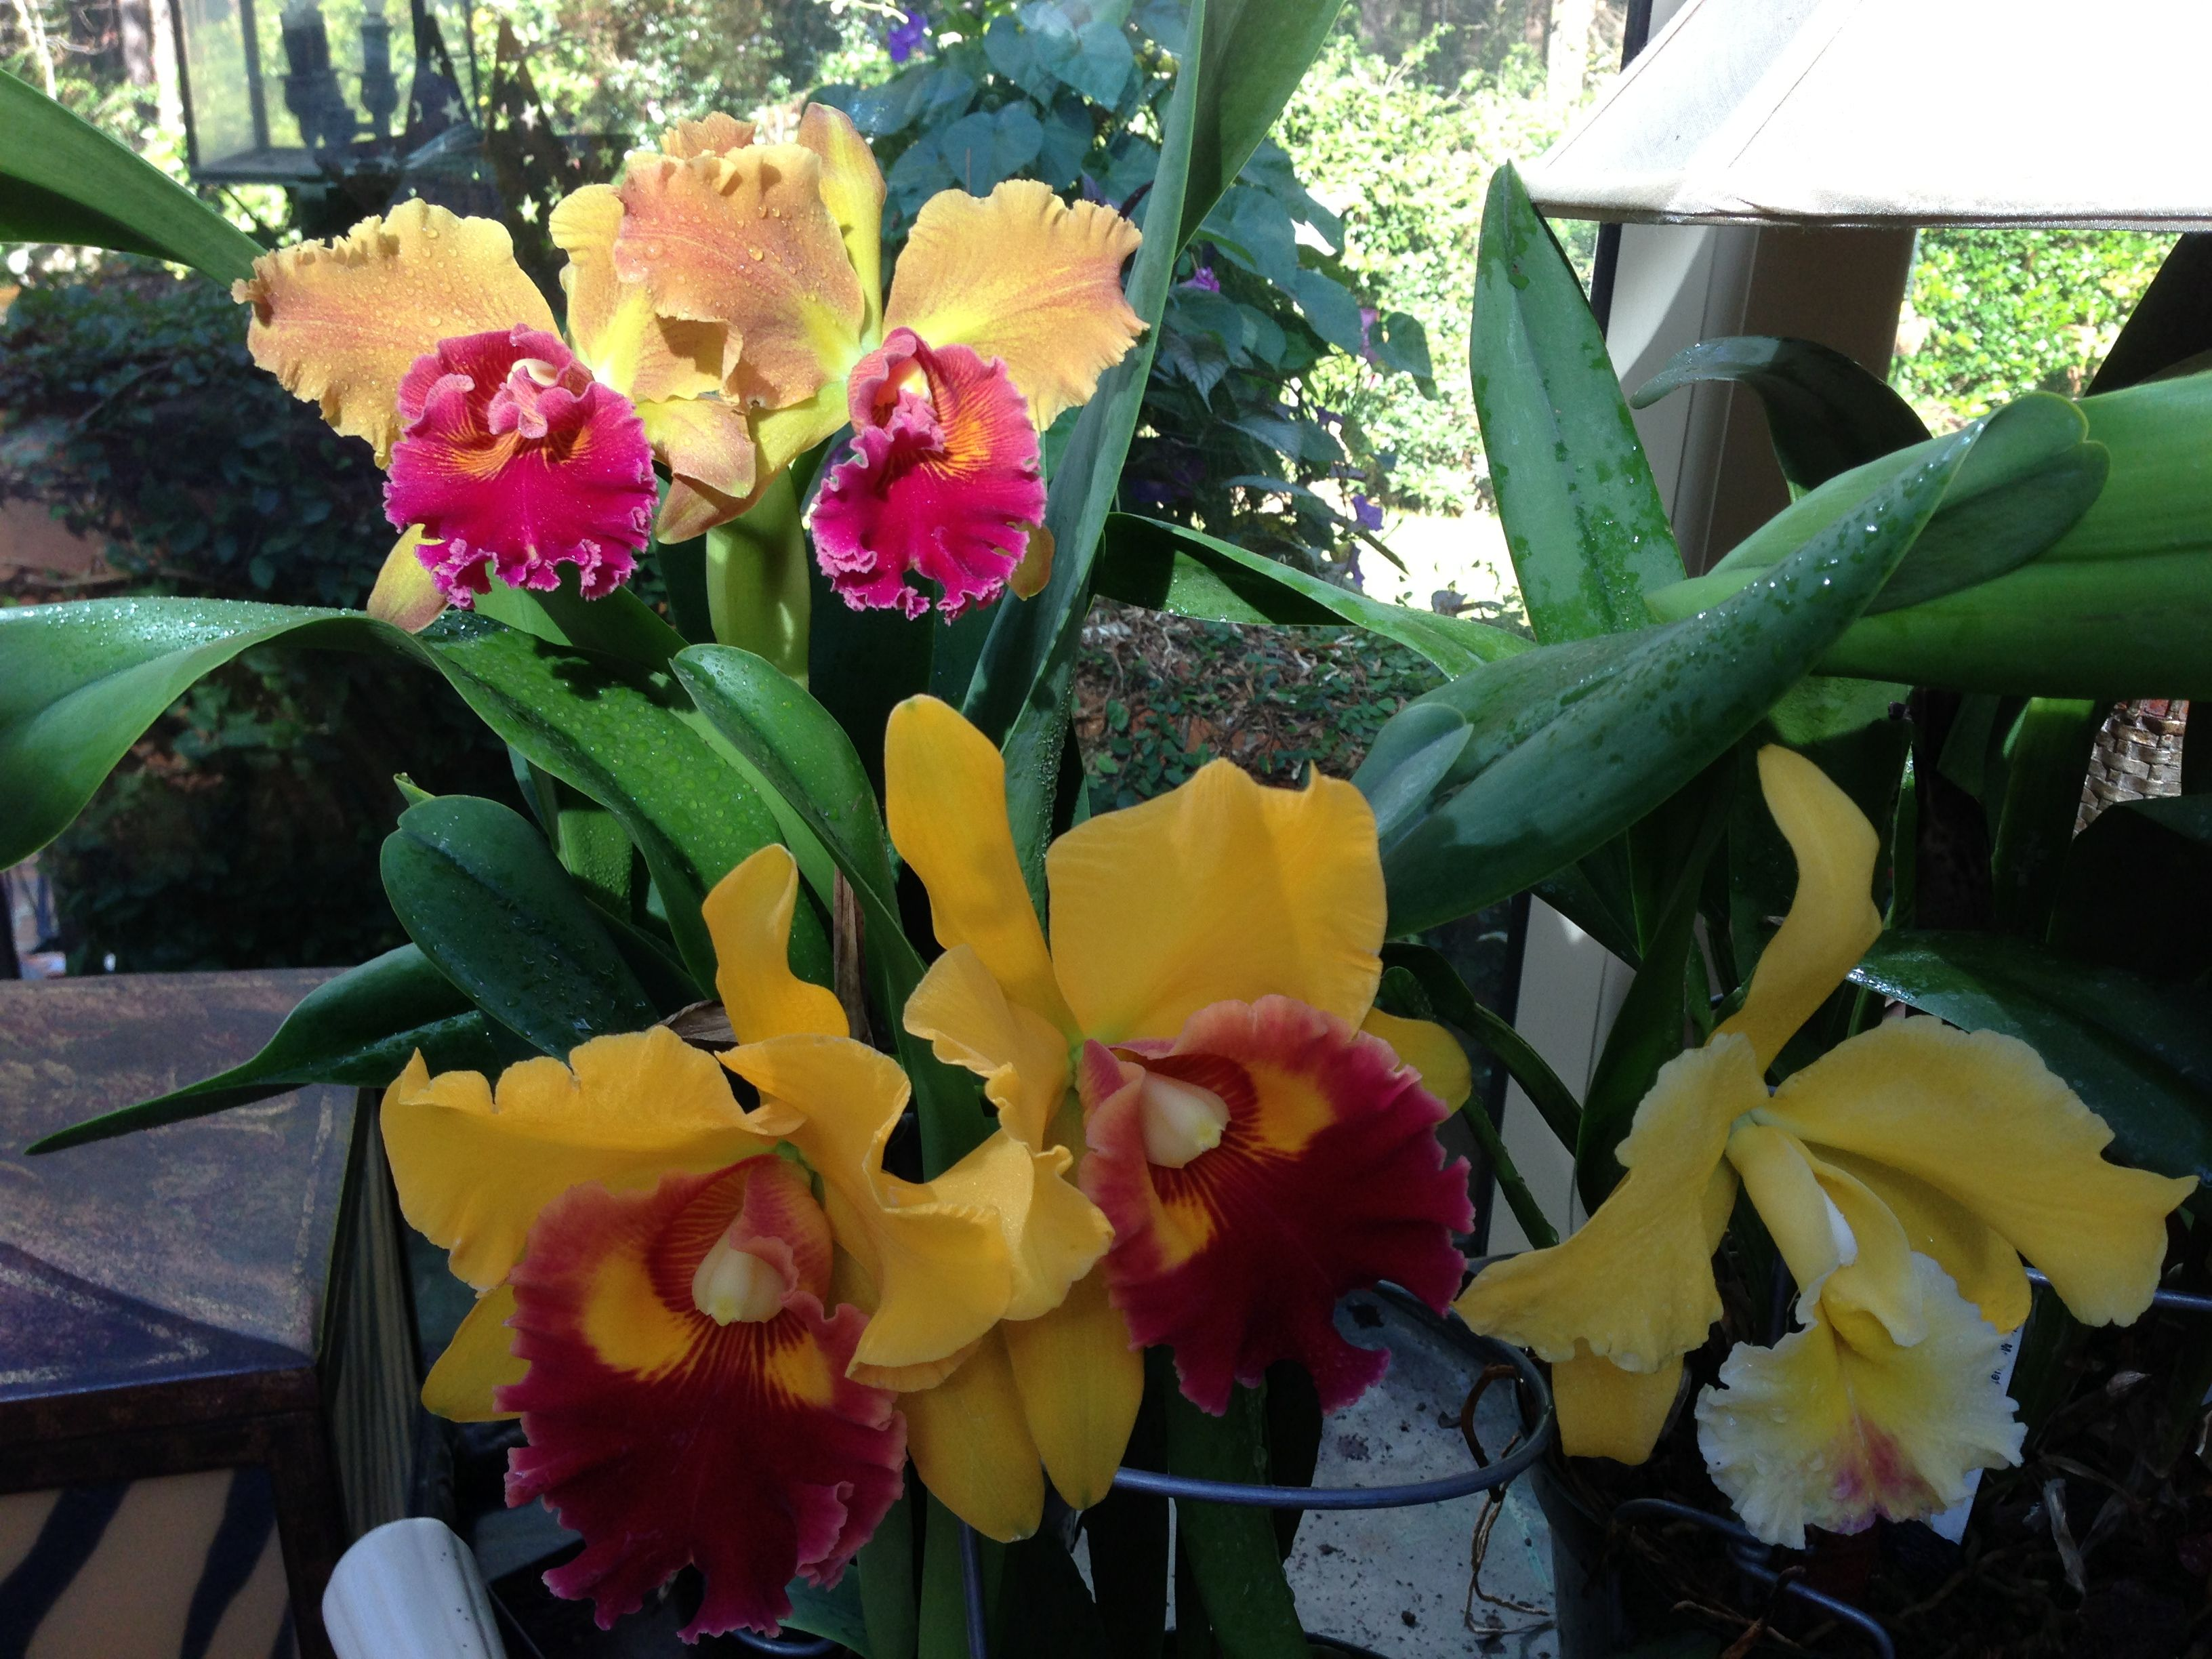 These yellow orchids are blooming in November in my